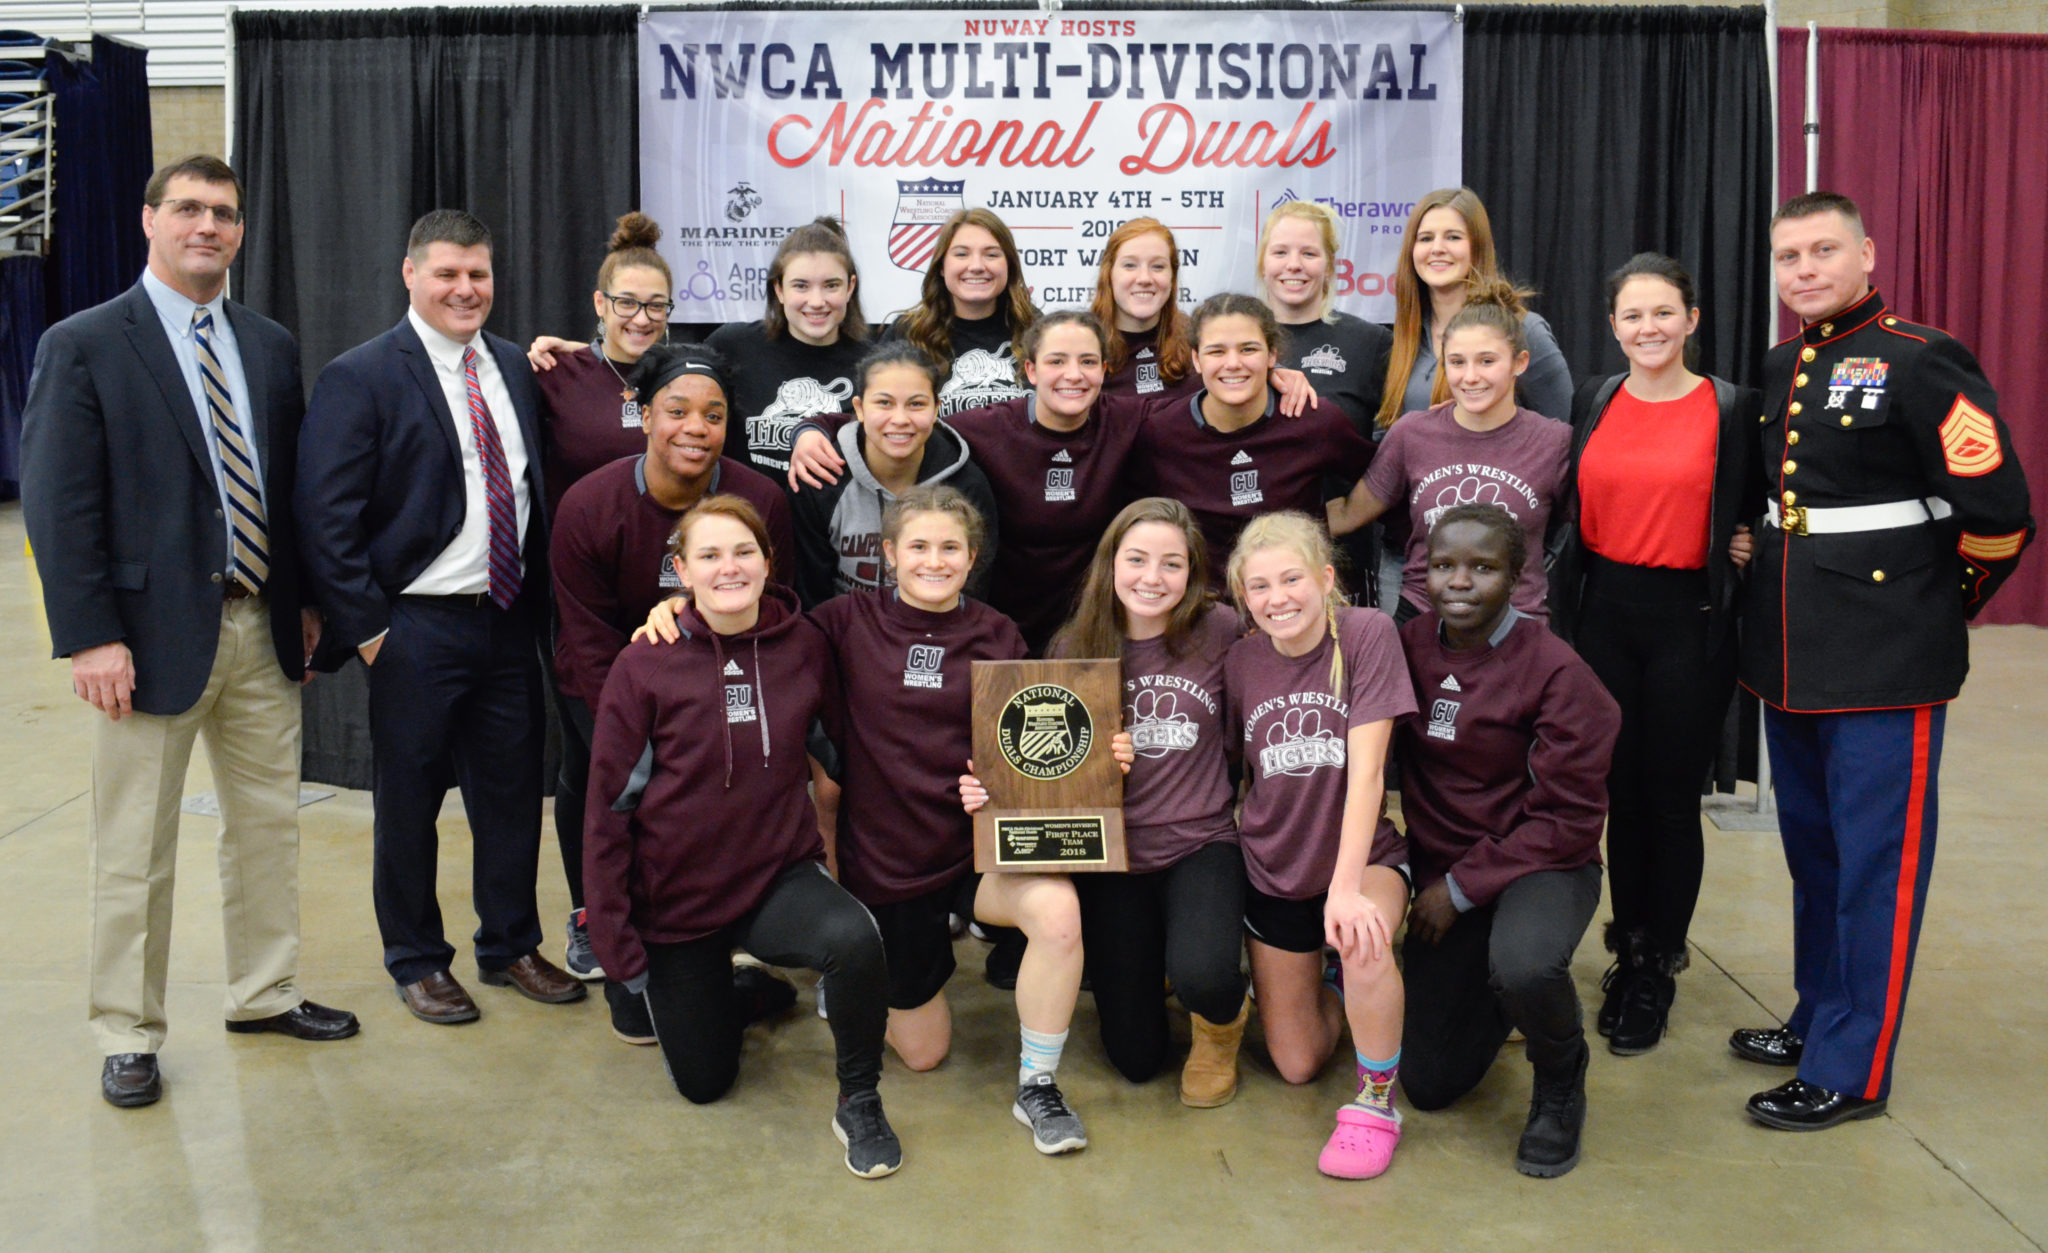 Campbellsville women steal the show at Multi Divisional National